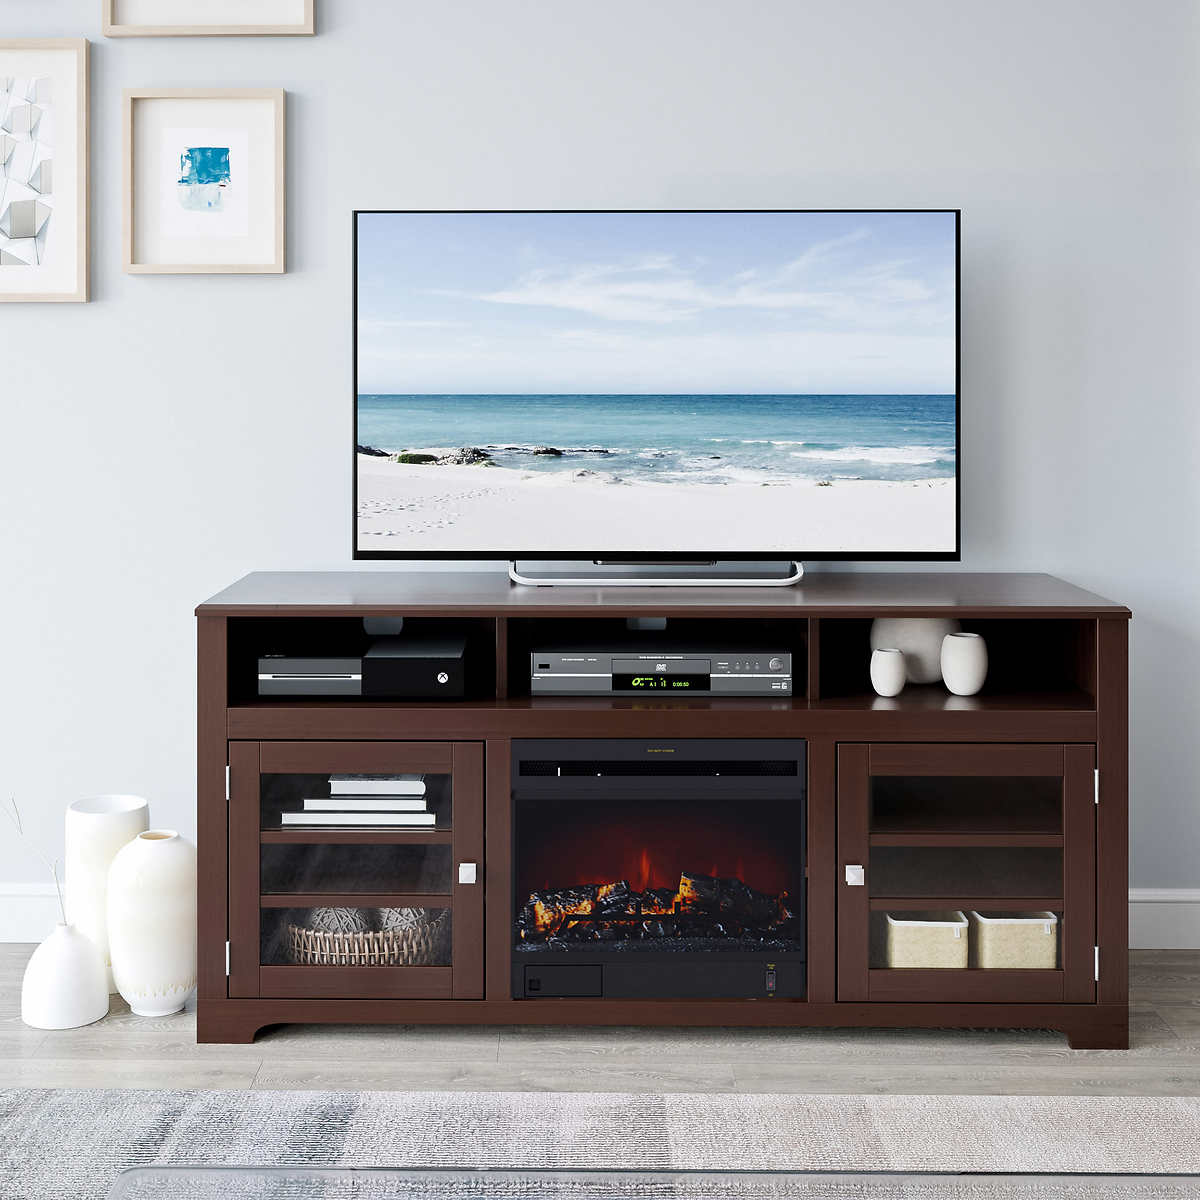 Mink Brown In Television Stand With Electric Fireplace - Costco electric fireplace